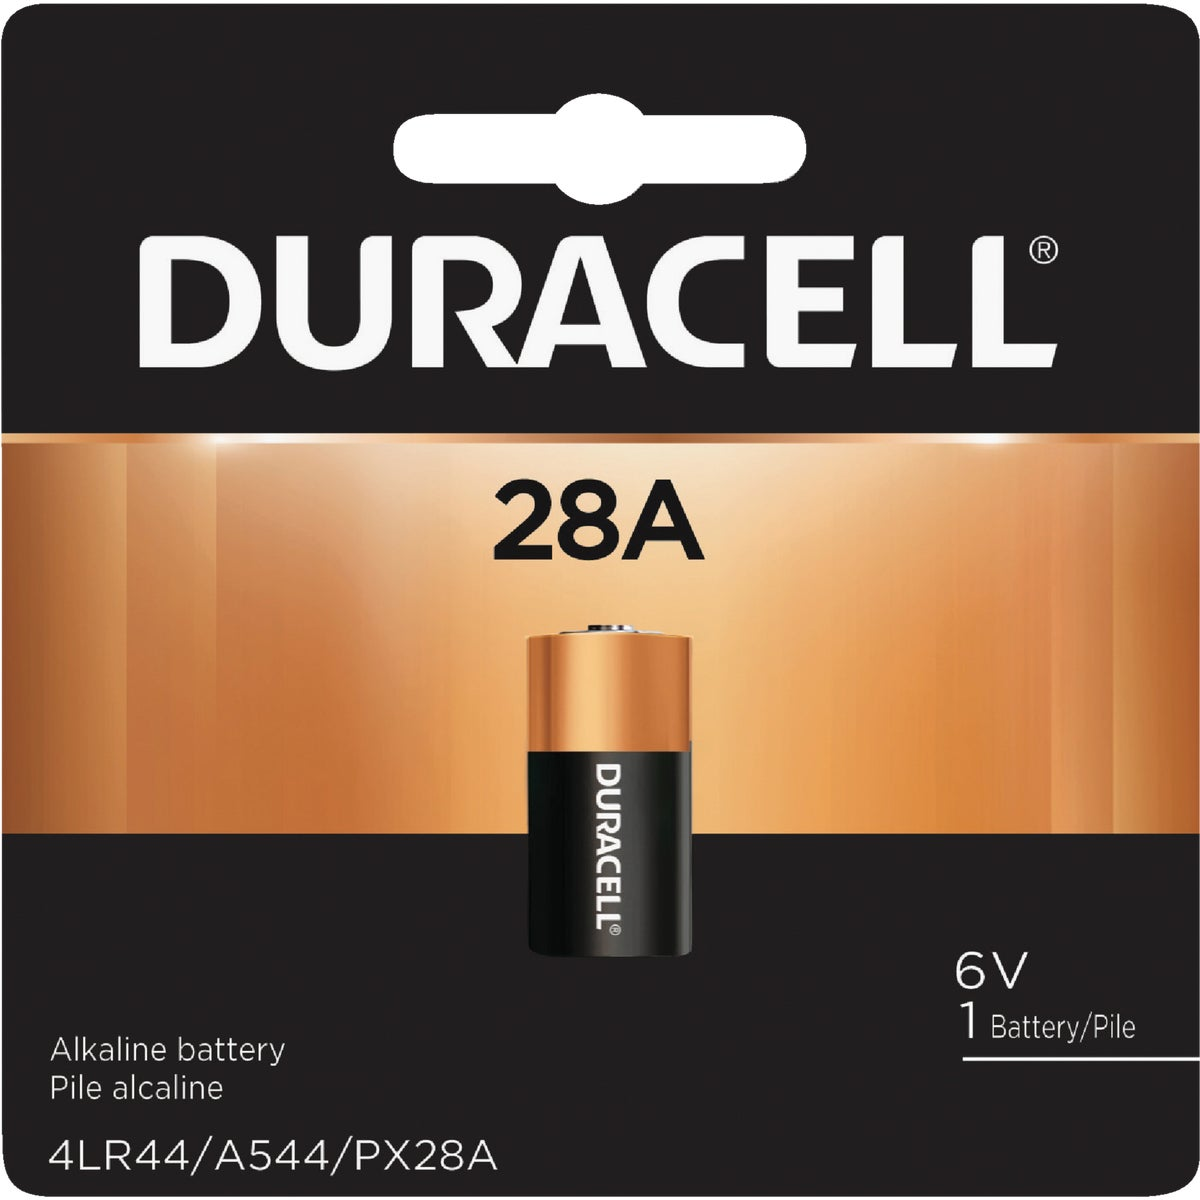 PX28A 6V MED BATTERY - 44687 by P & G  Duracell